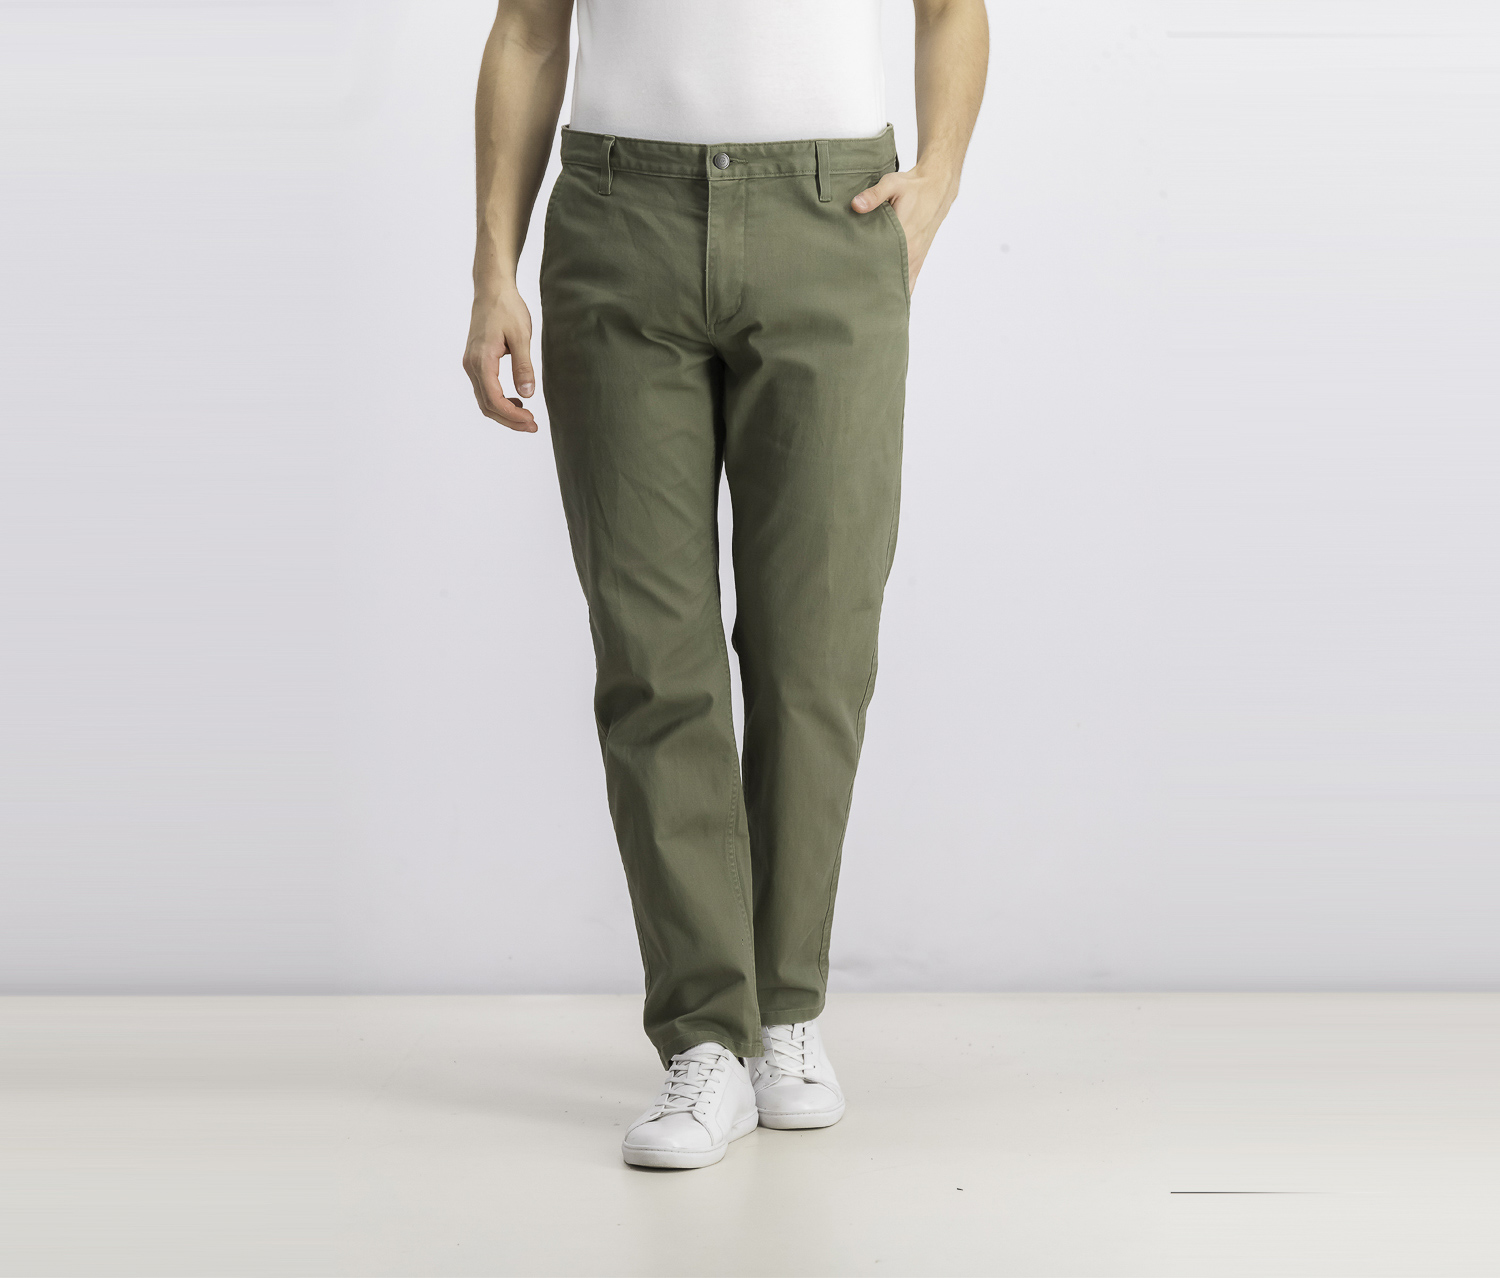 Men's All Seasons Slim-Fit Alpha Khaki Pants, Green